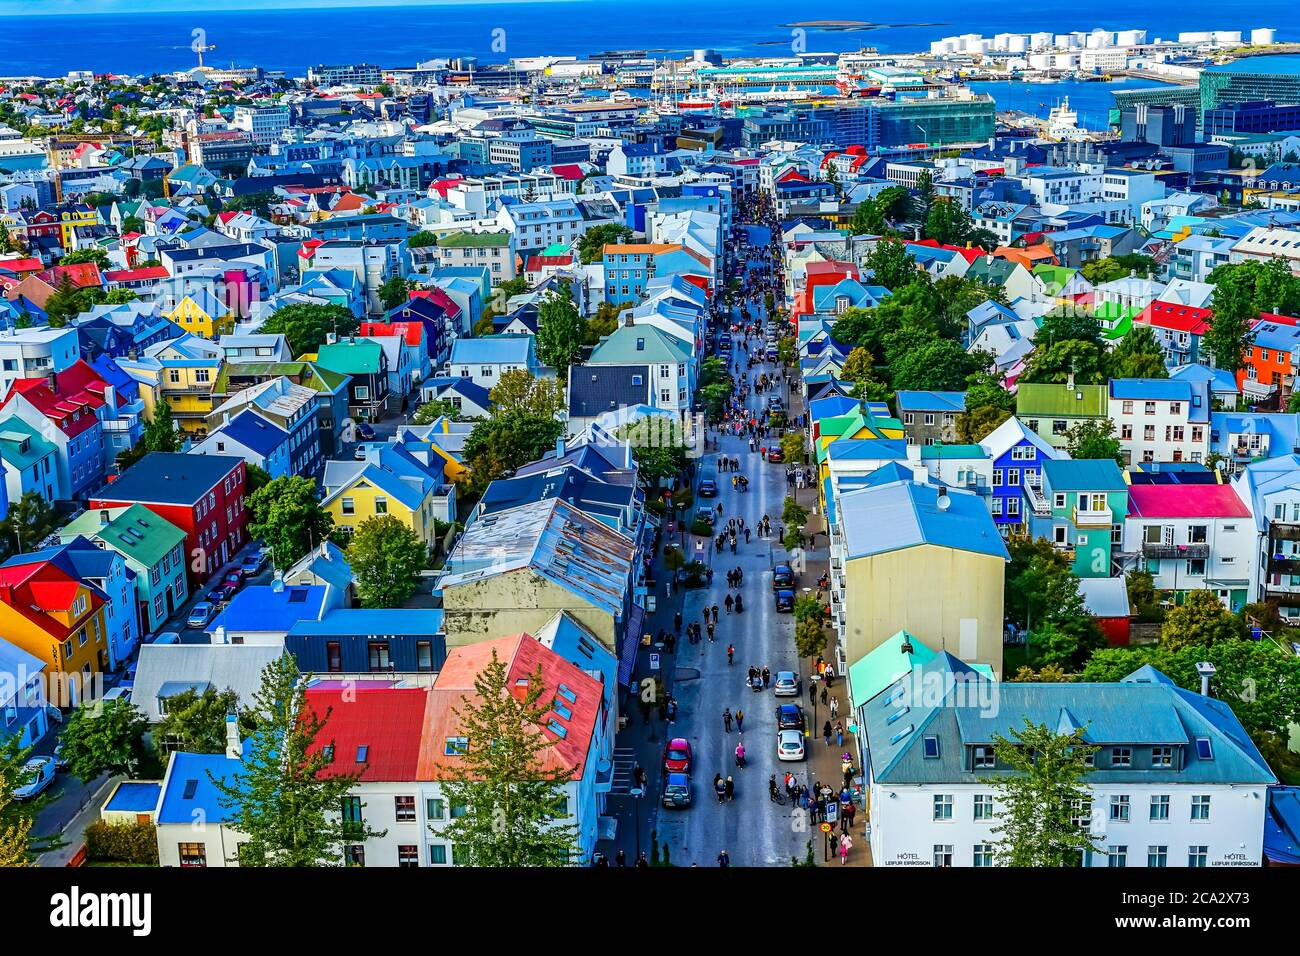 Colorful Red Blue Green Houses Cars Shopping Streets Harbor Reykjavik Iceland. Stock Photo